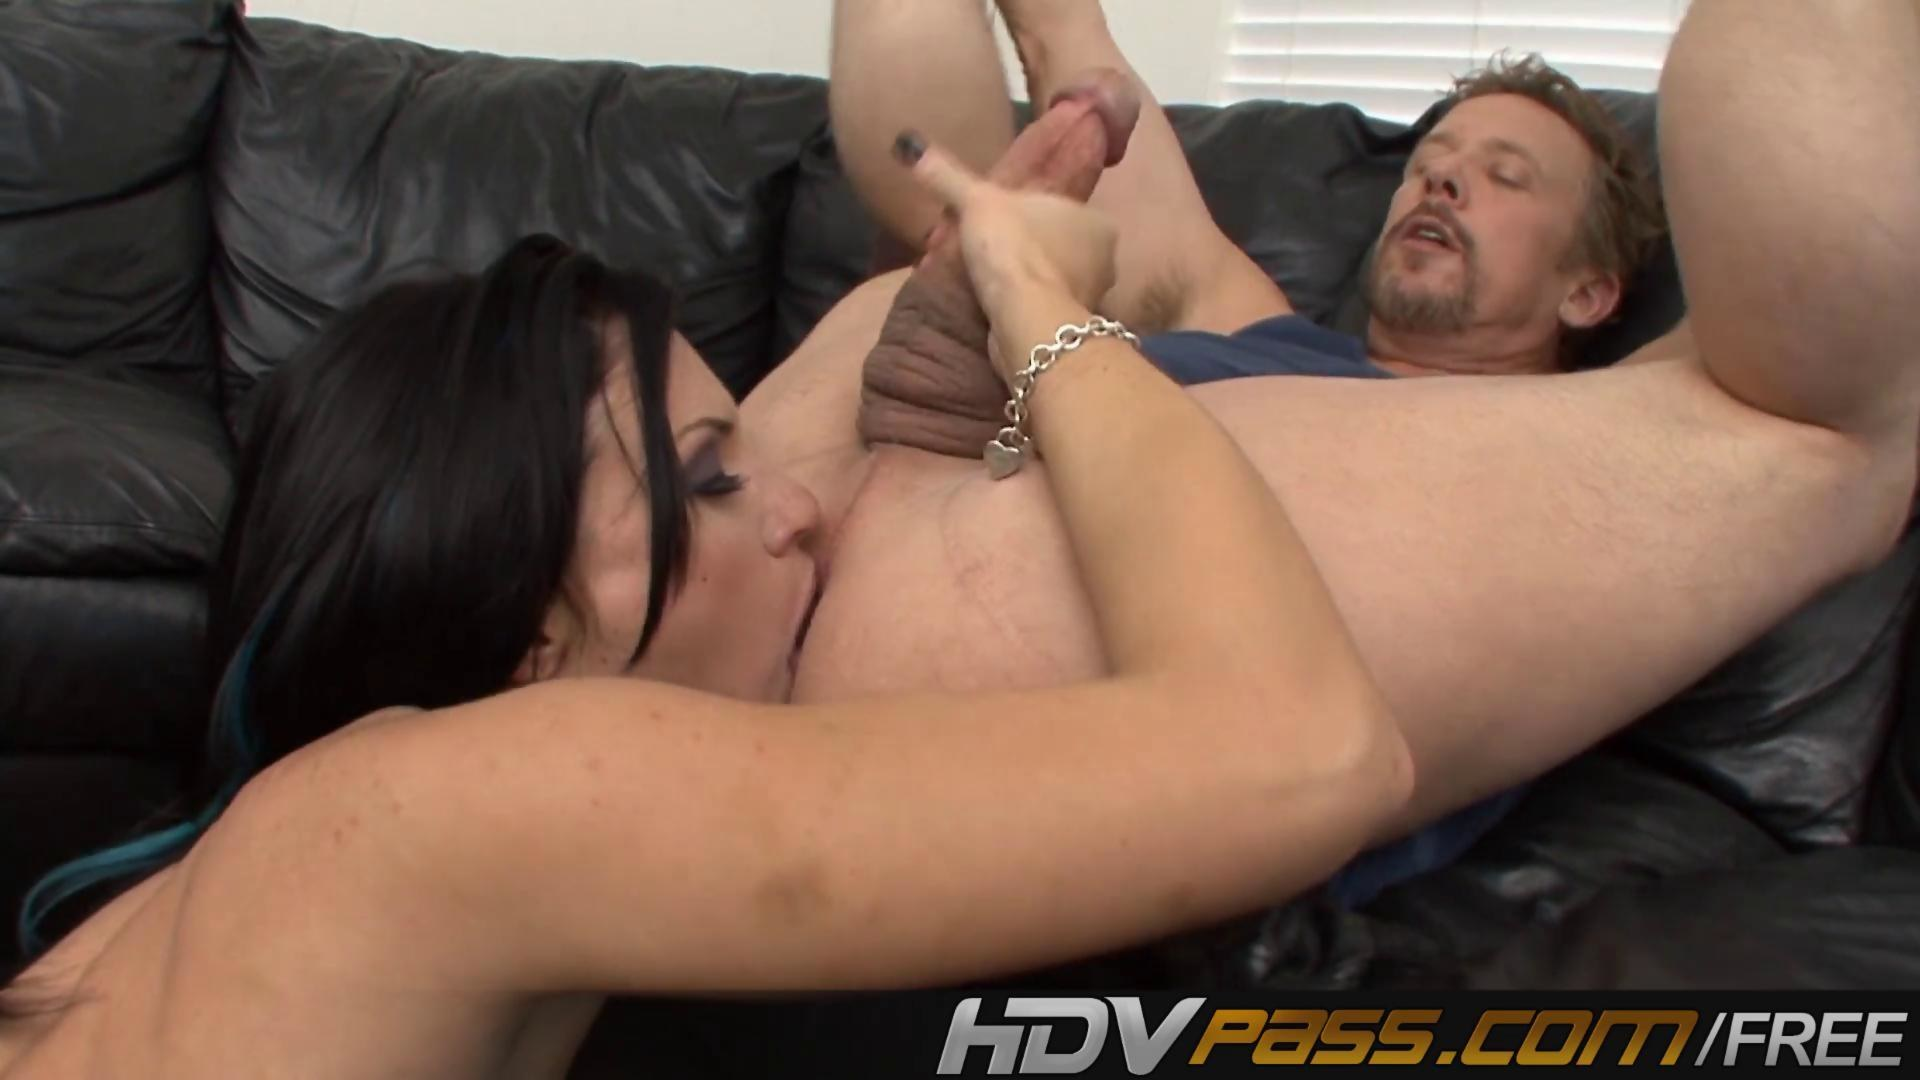 Arthur recommends Tranny first time schoolgirl mistress